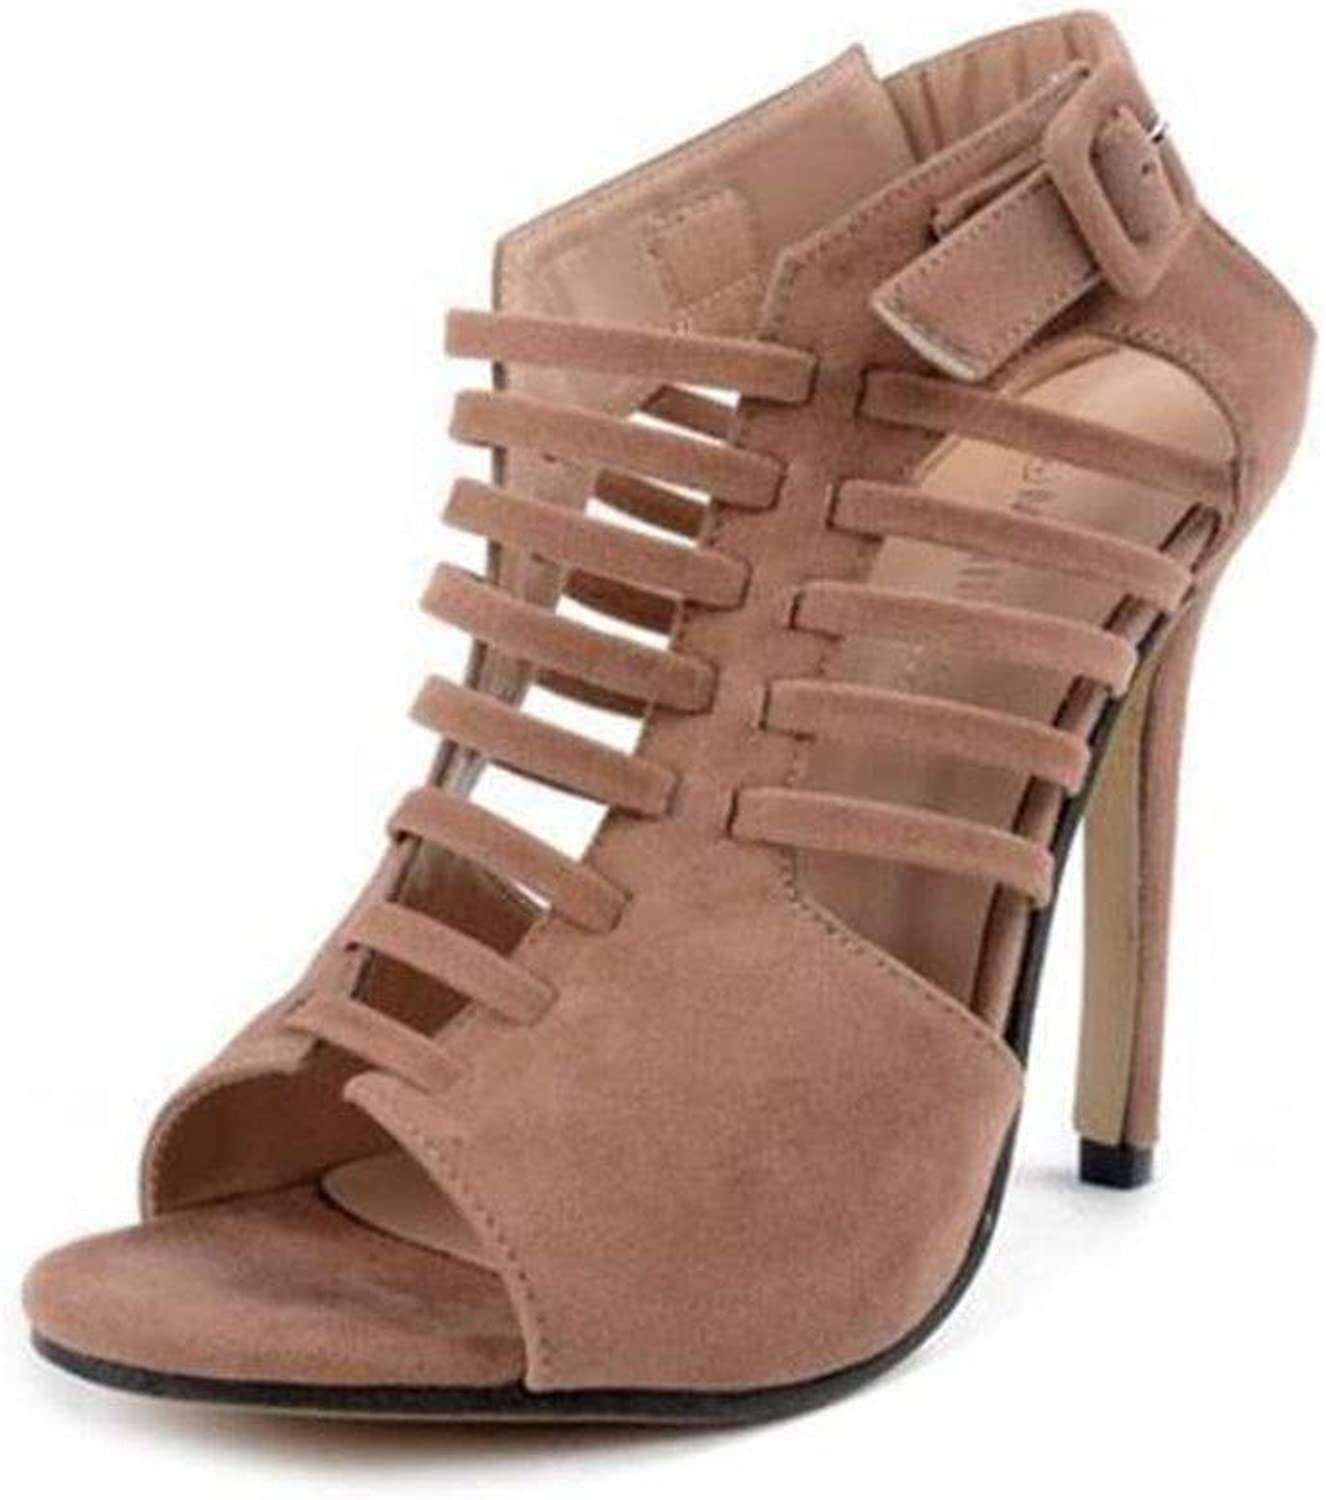 shoes High-Heeled Strips, Strips, Roman, Sandals, Fish Mouth, 37-46 Women's, Large Size